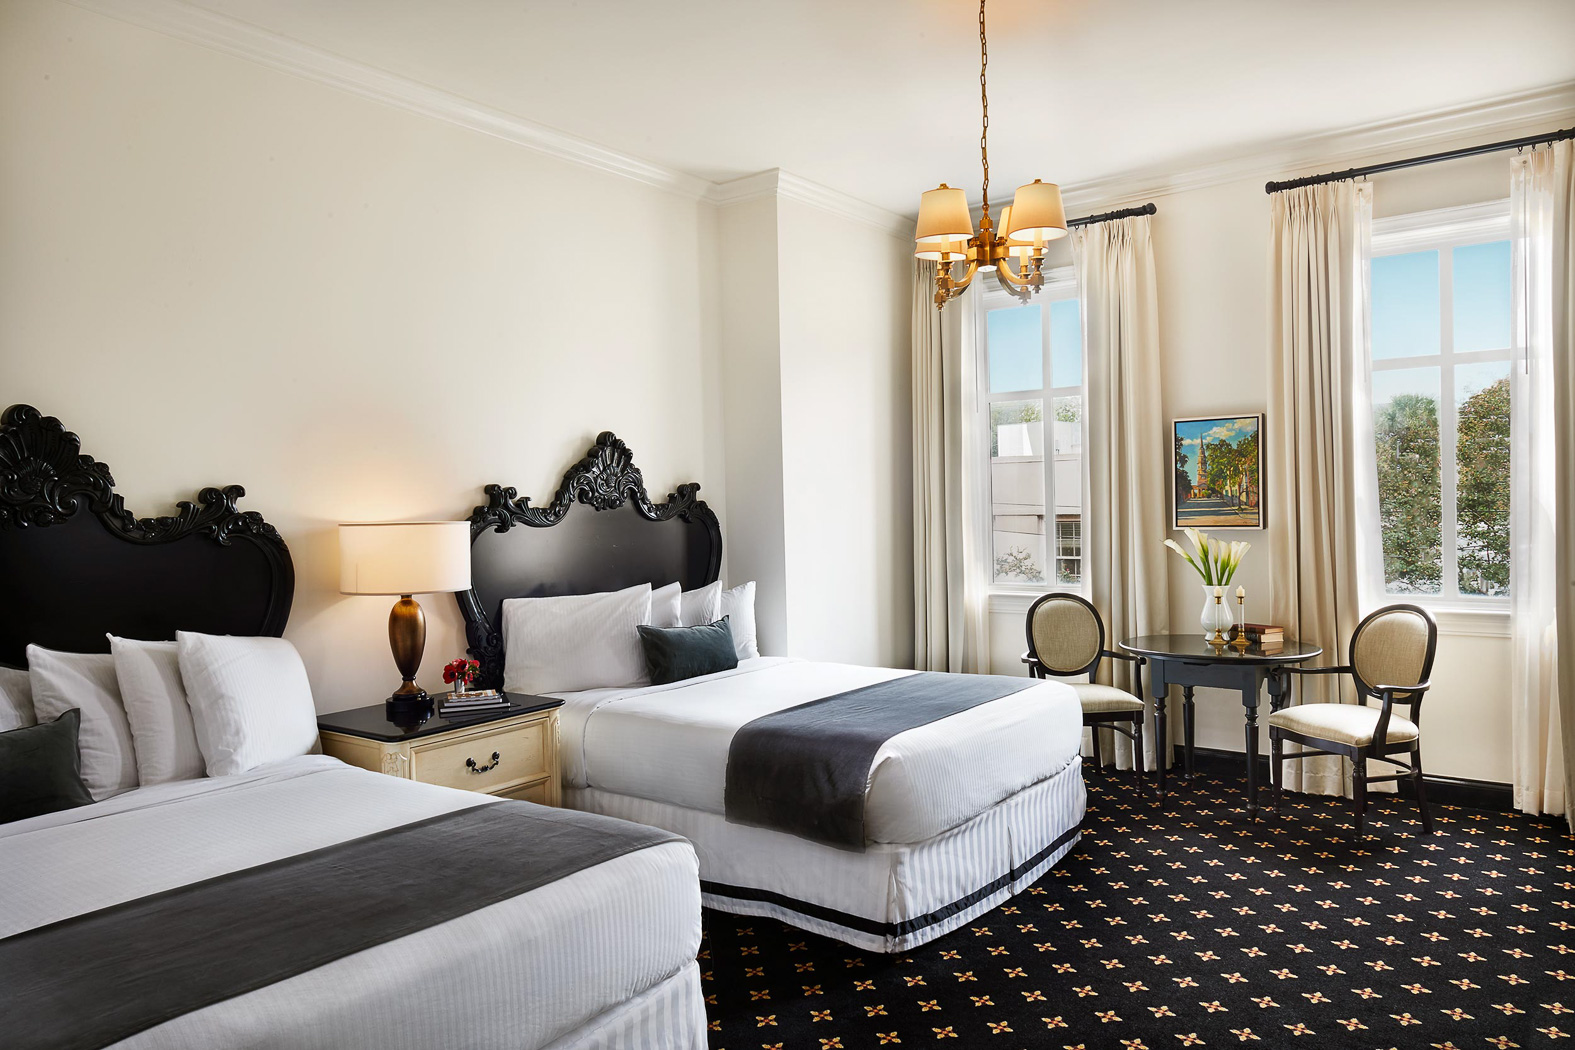 Hotel rooms in charleston charleston boutique hotel for Best boutique hotels french quarter